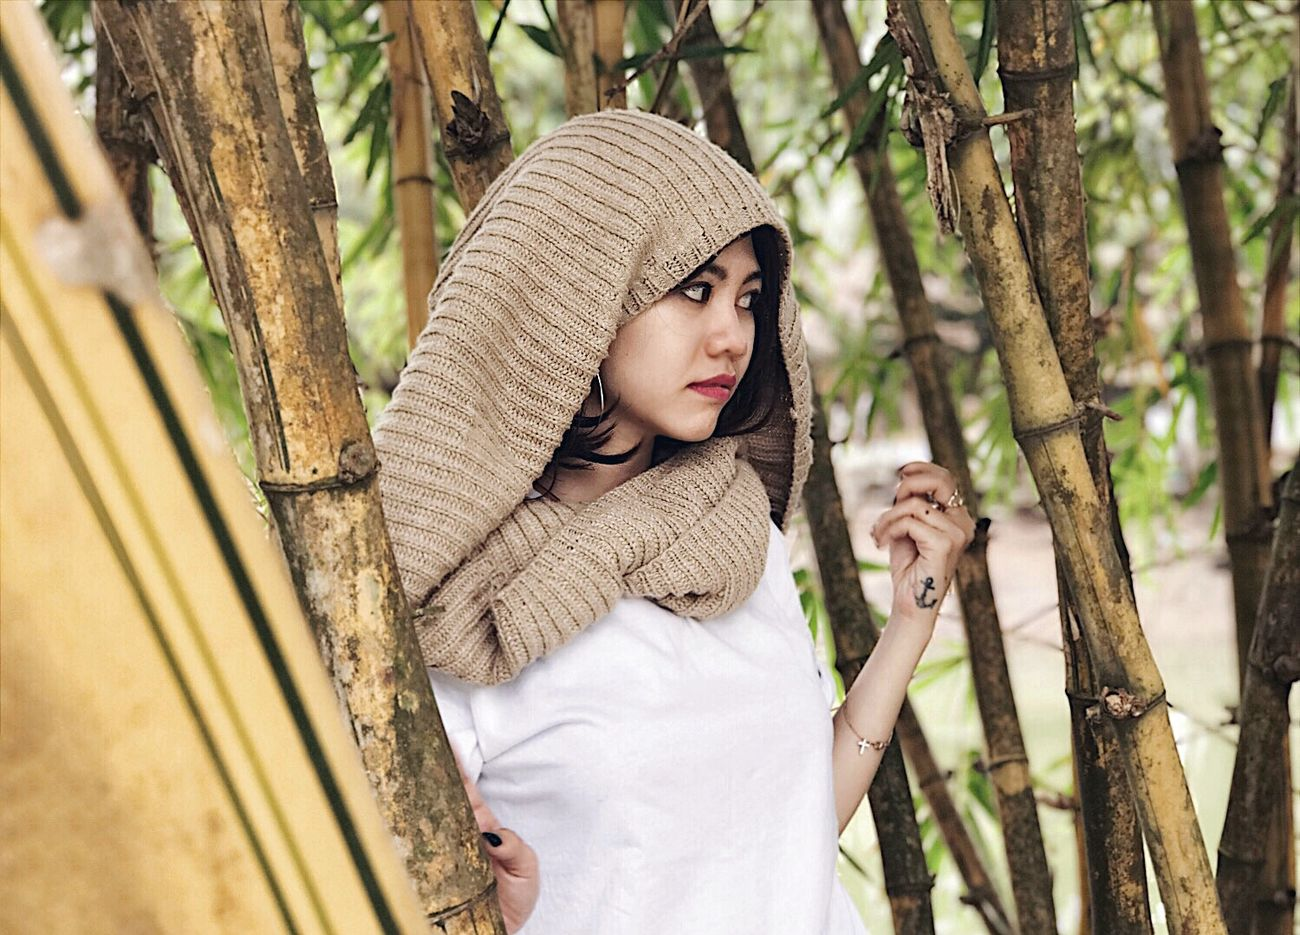 Beautiful People Beauty Beauty In Nature Day Girl Human Body Part Nature Nature Only Women Outdoors People Photographer Photography Portrait Portrait Of A Woman Tree Tree Trunk V Vietnamesegirl View Yellow Young Adult